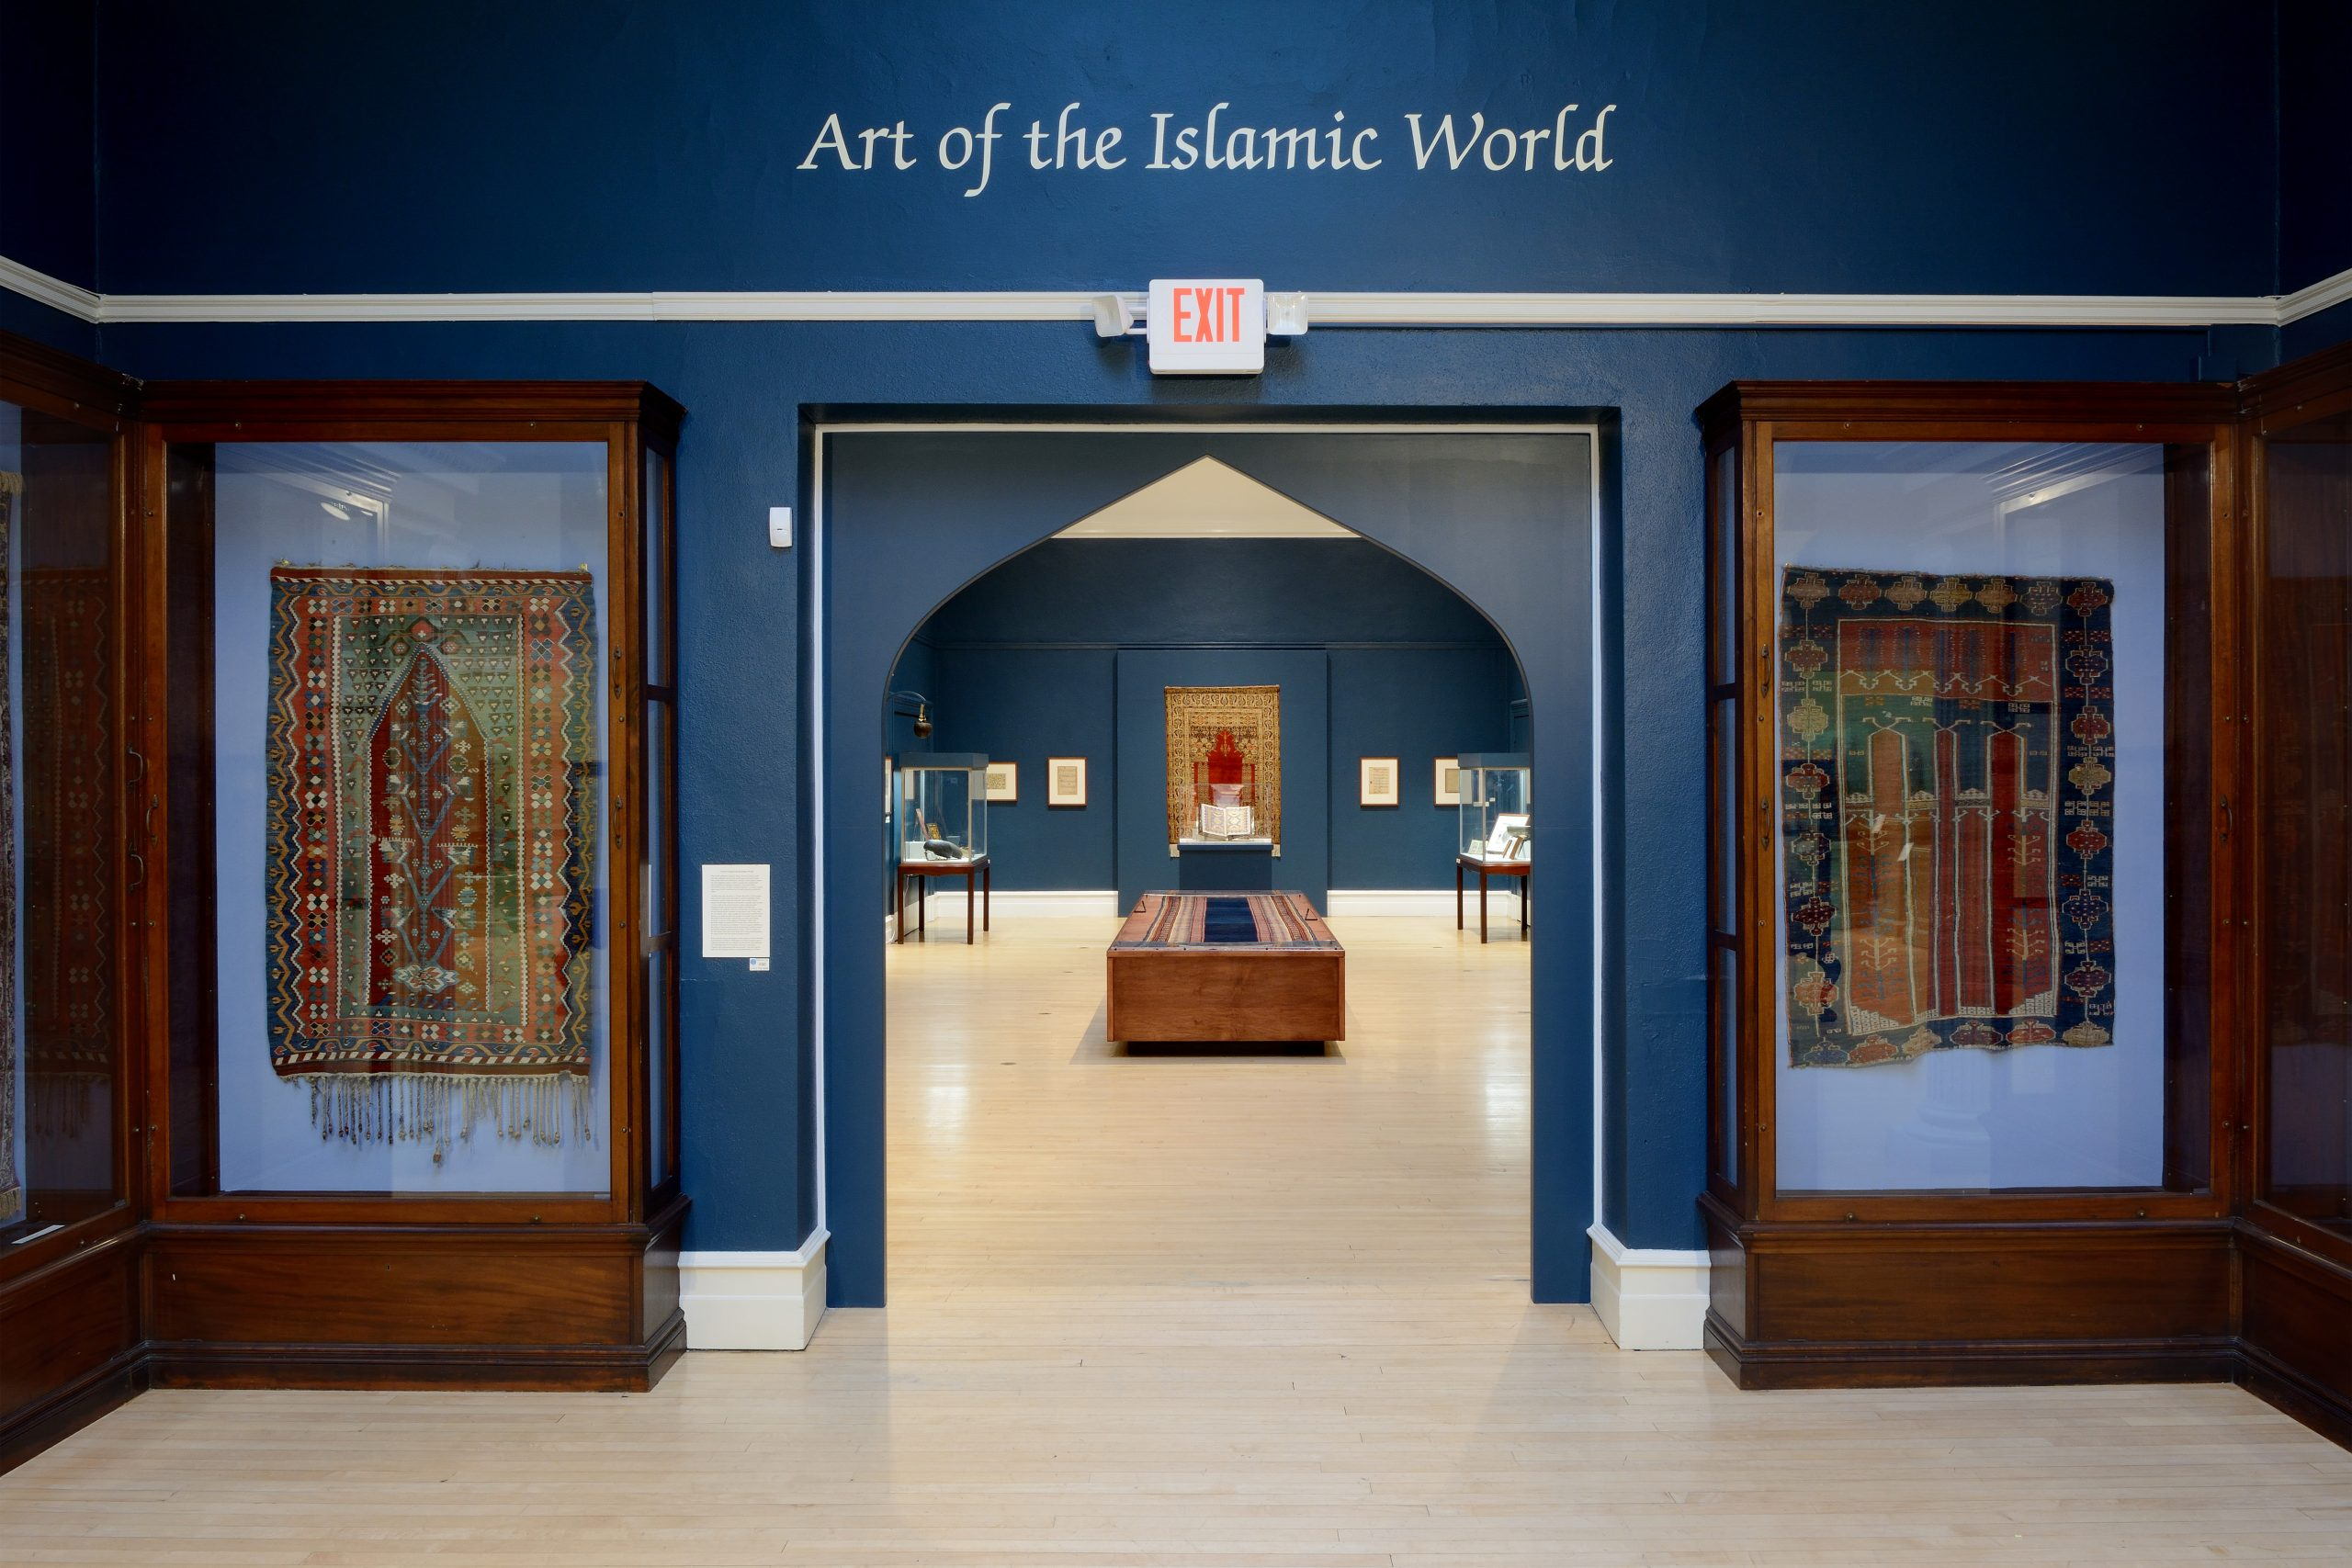 Museum Gallery With Pointed Archway Doors Housing Islamic Art